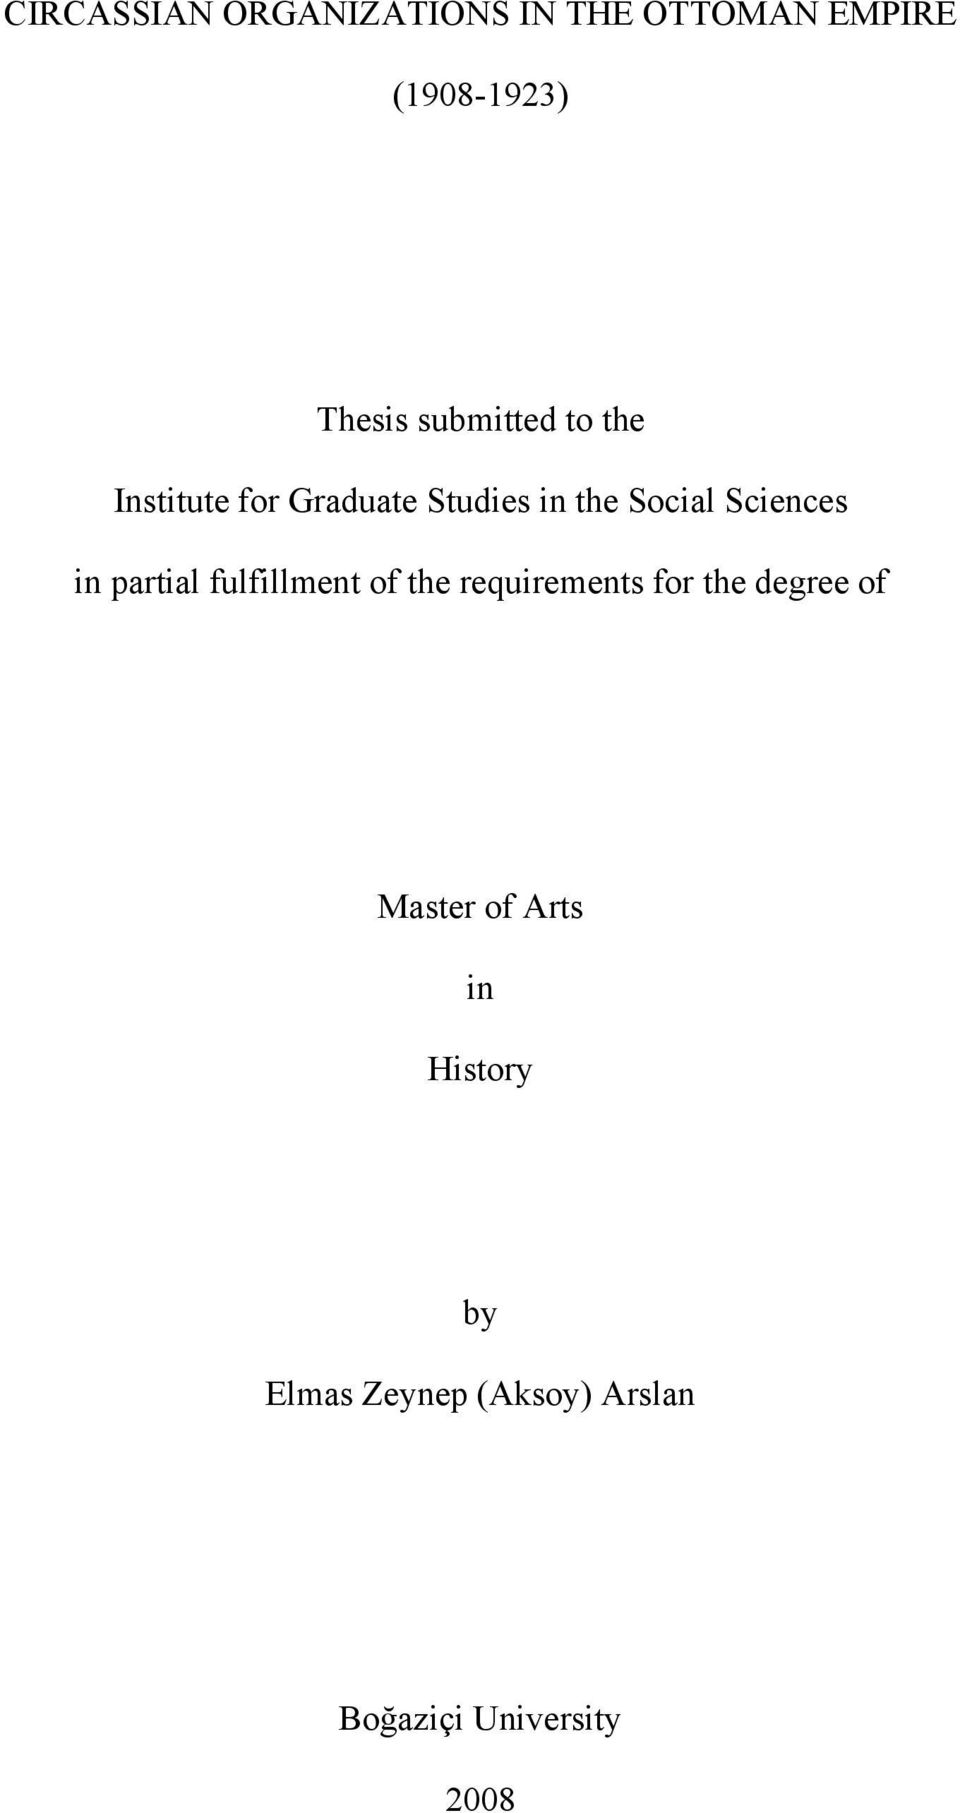 Sciences in partial fulfillment of the requirements for the degree of